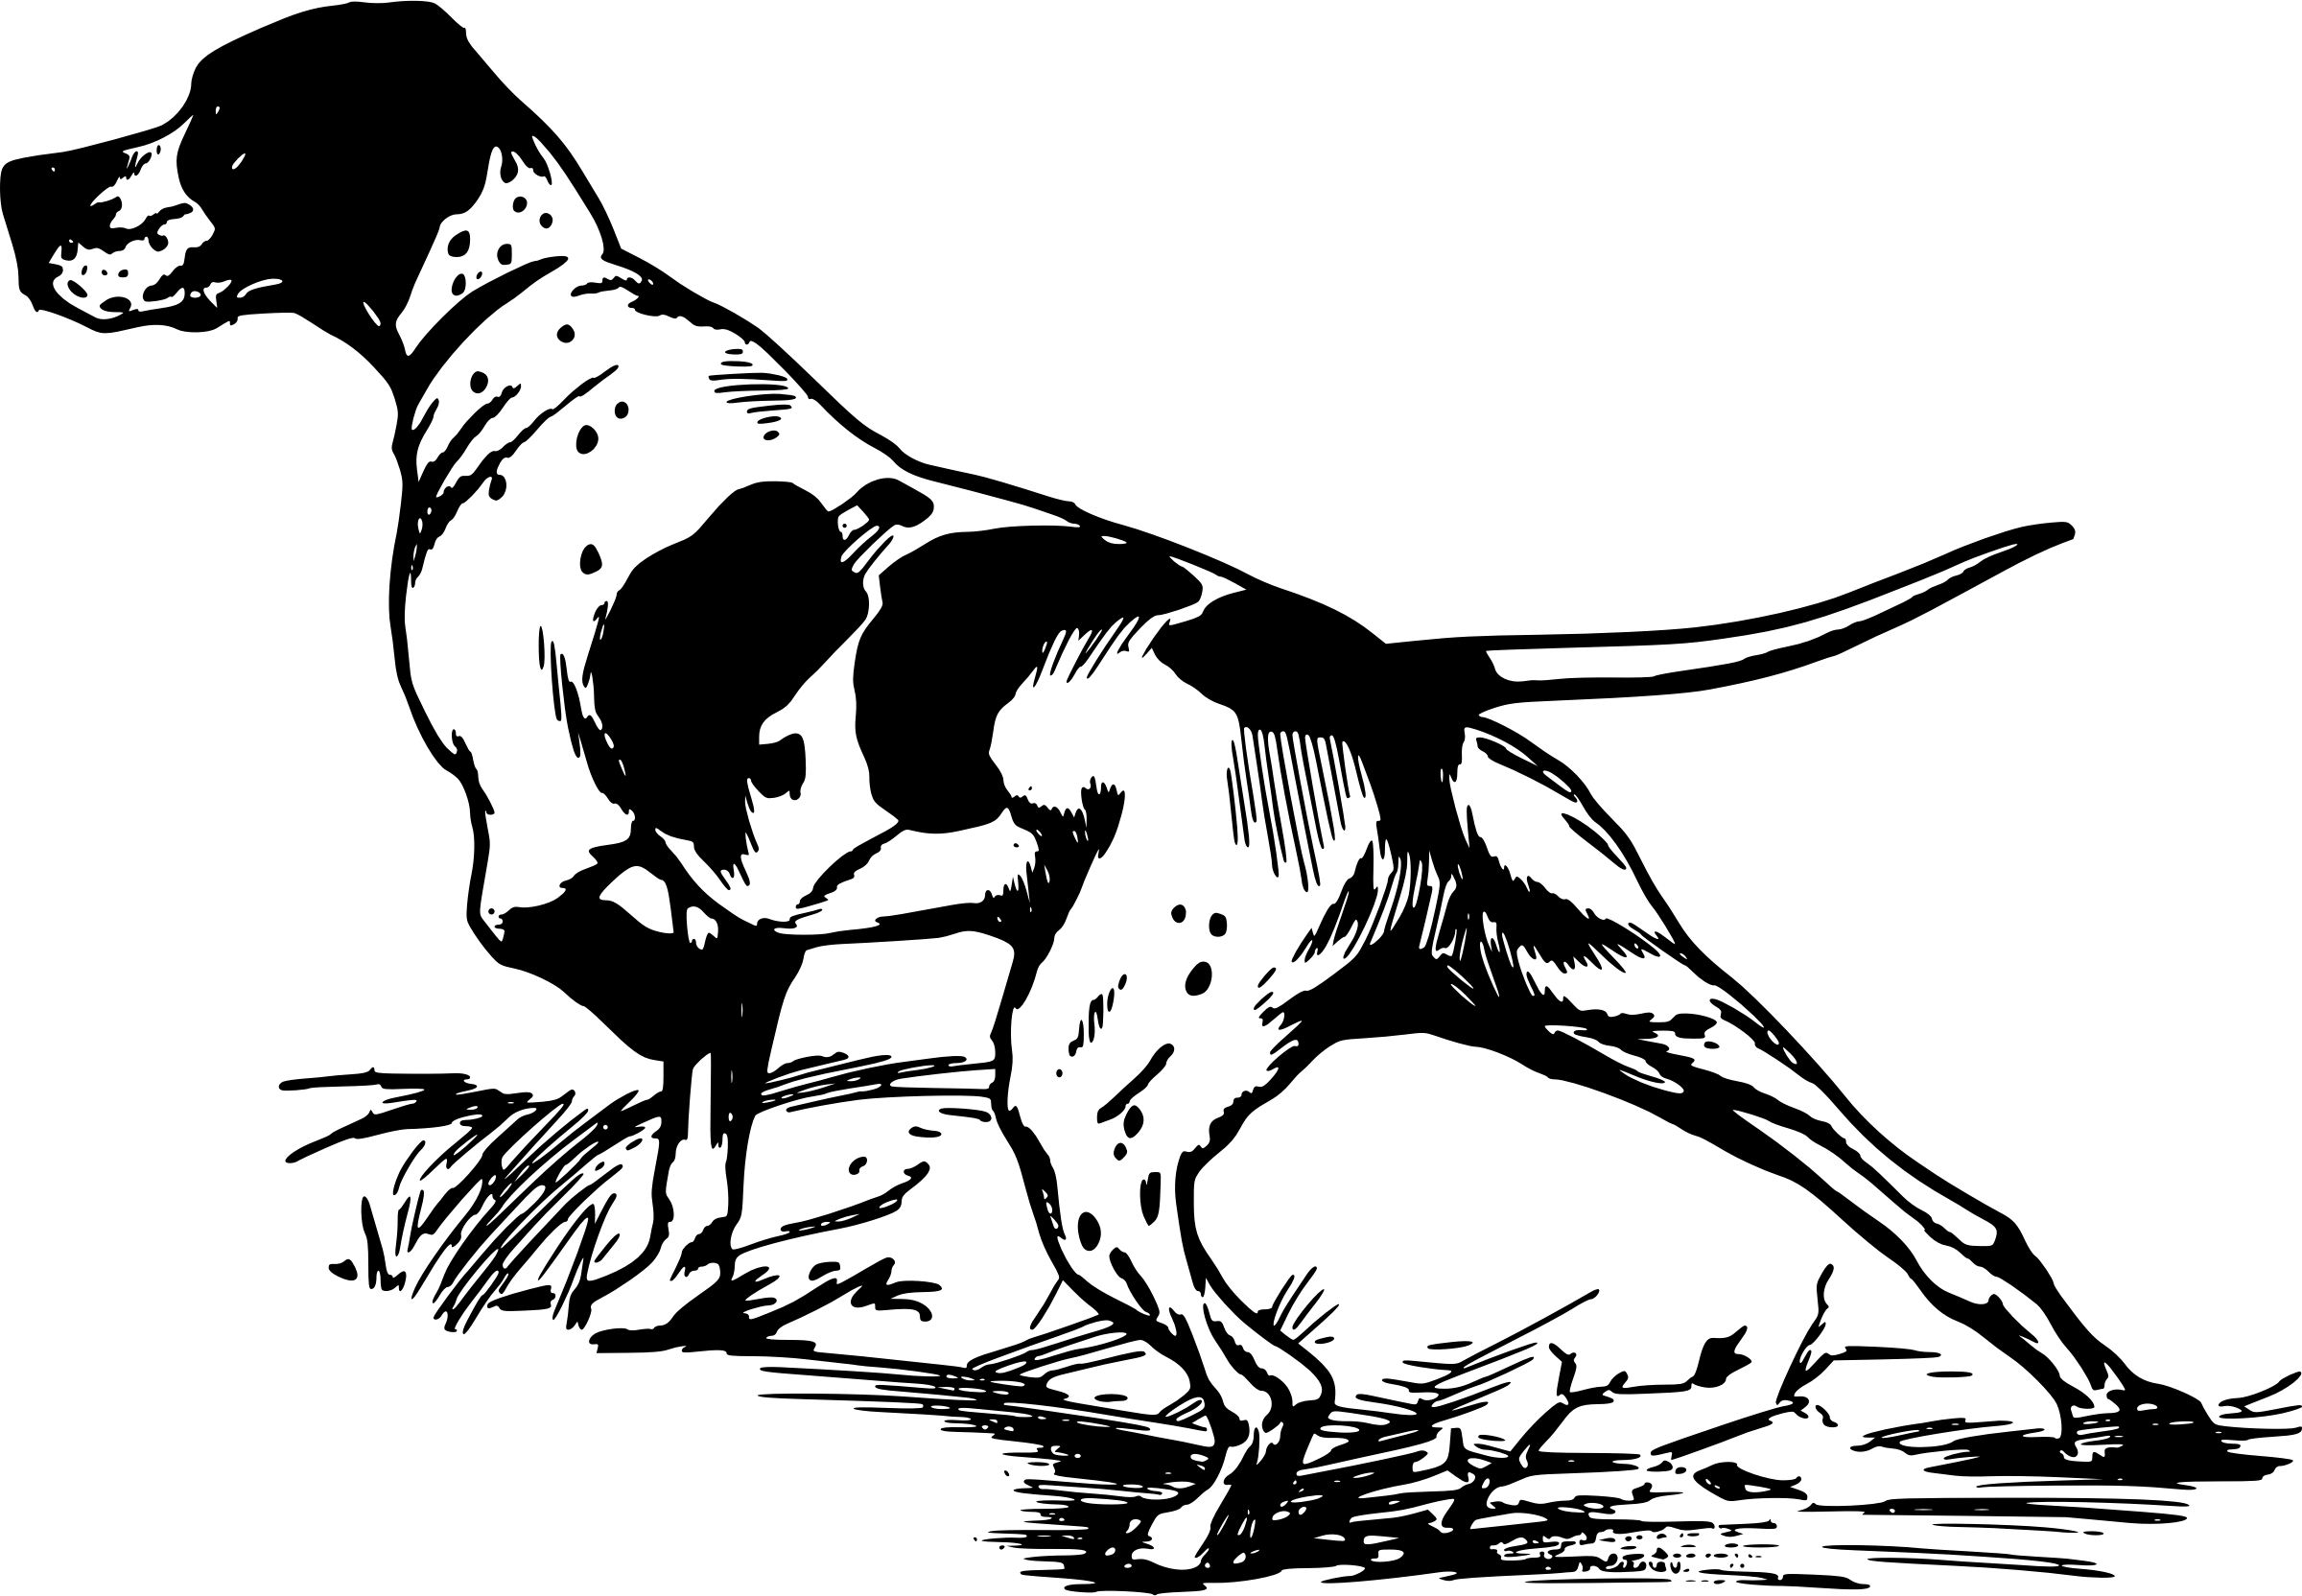 Hunting Dog Silhouette Vector Clipart Free